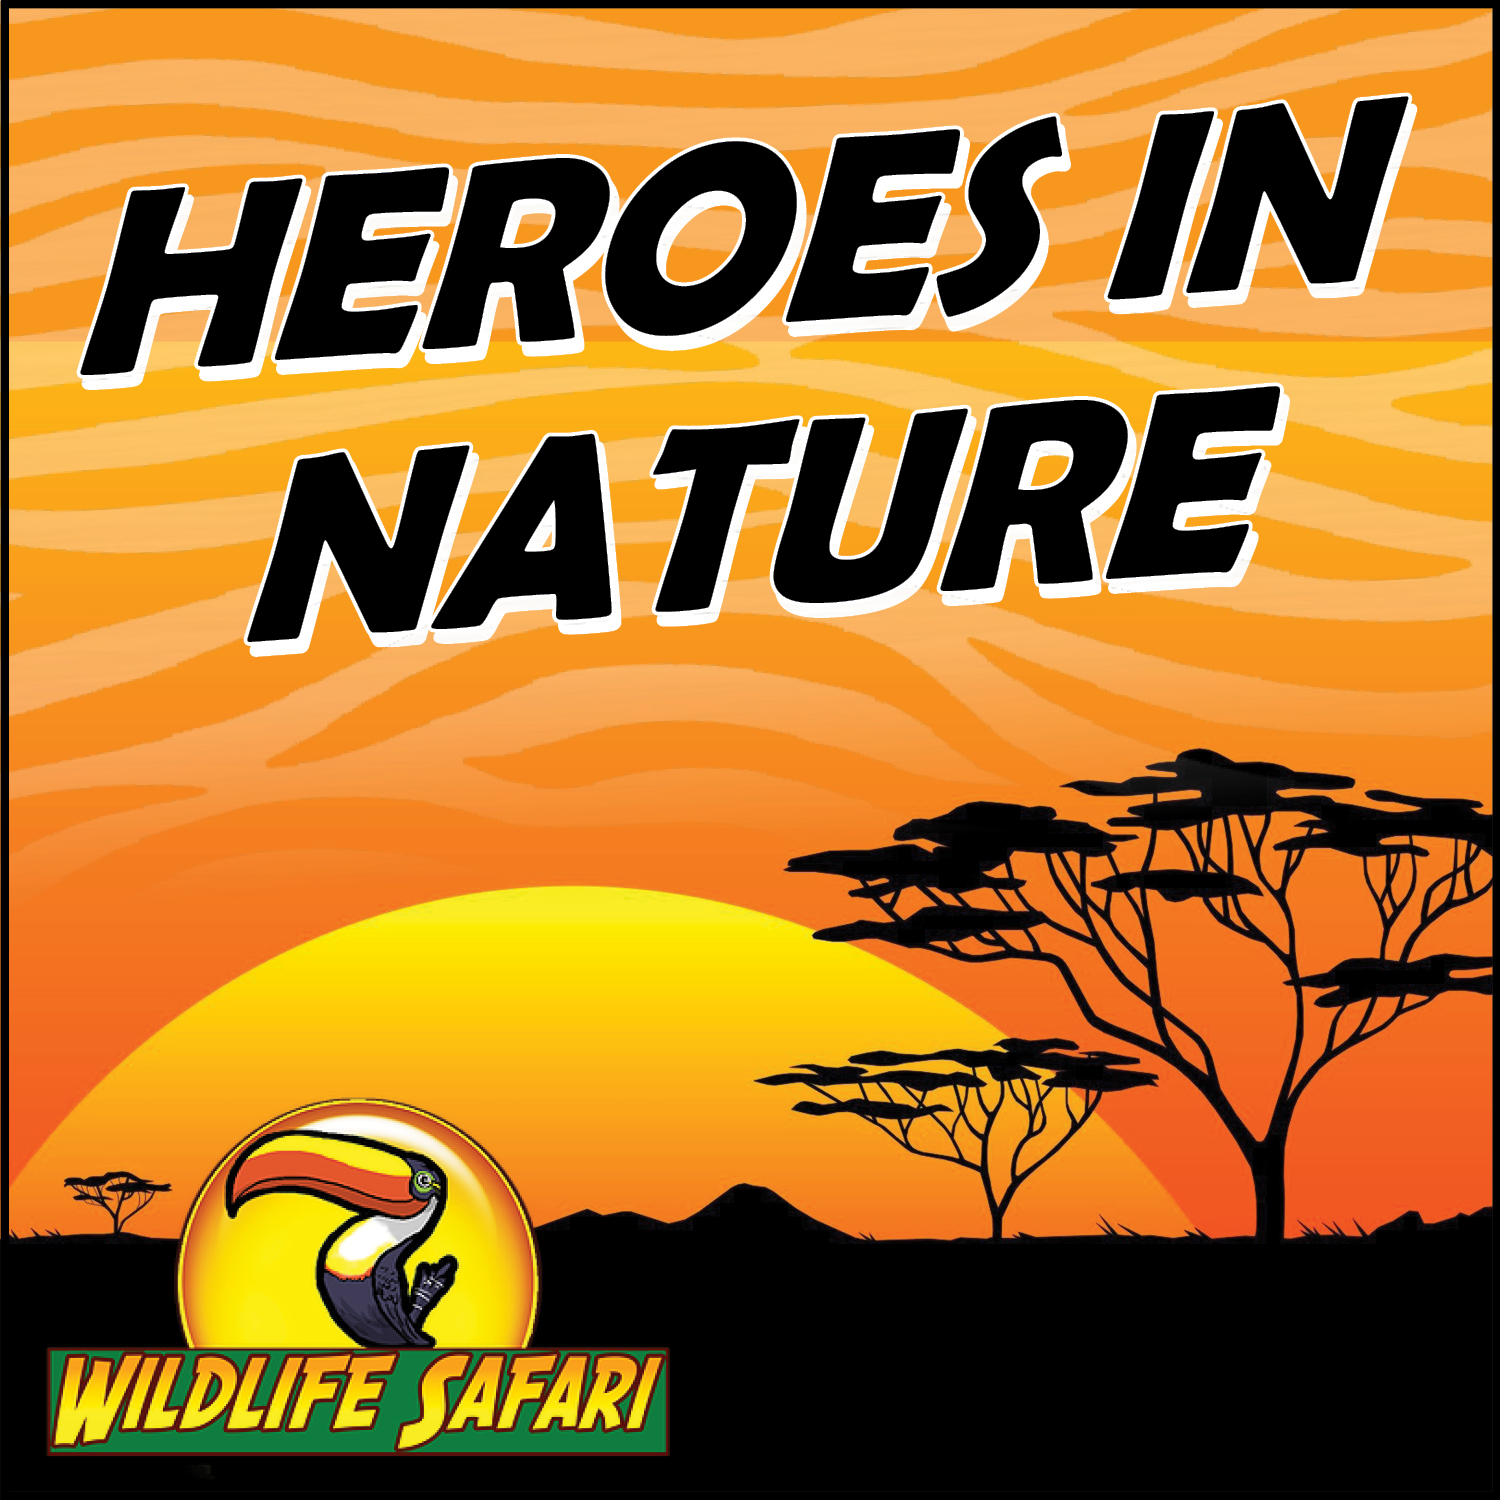 Heroes in Nature